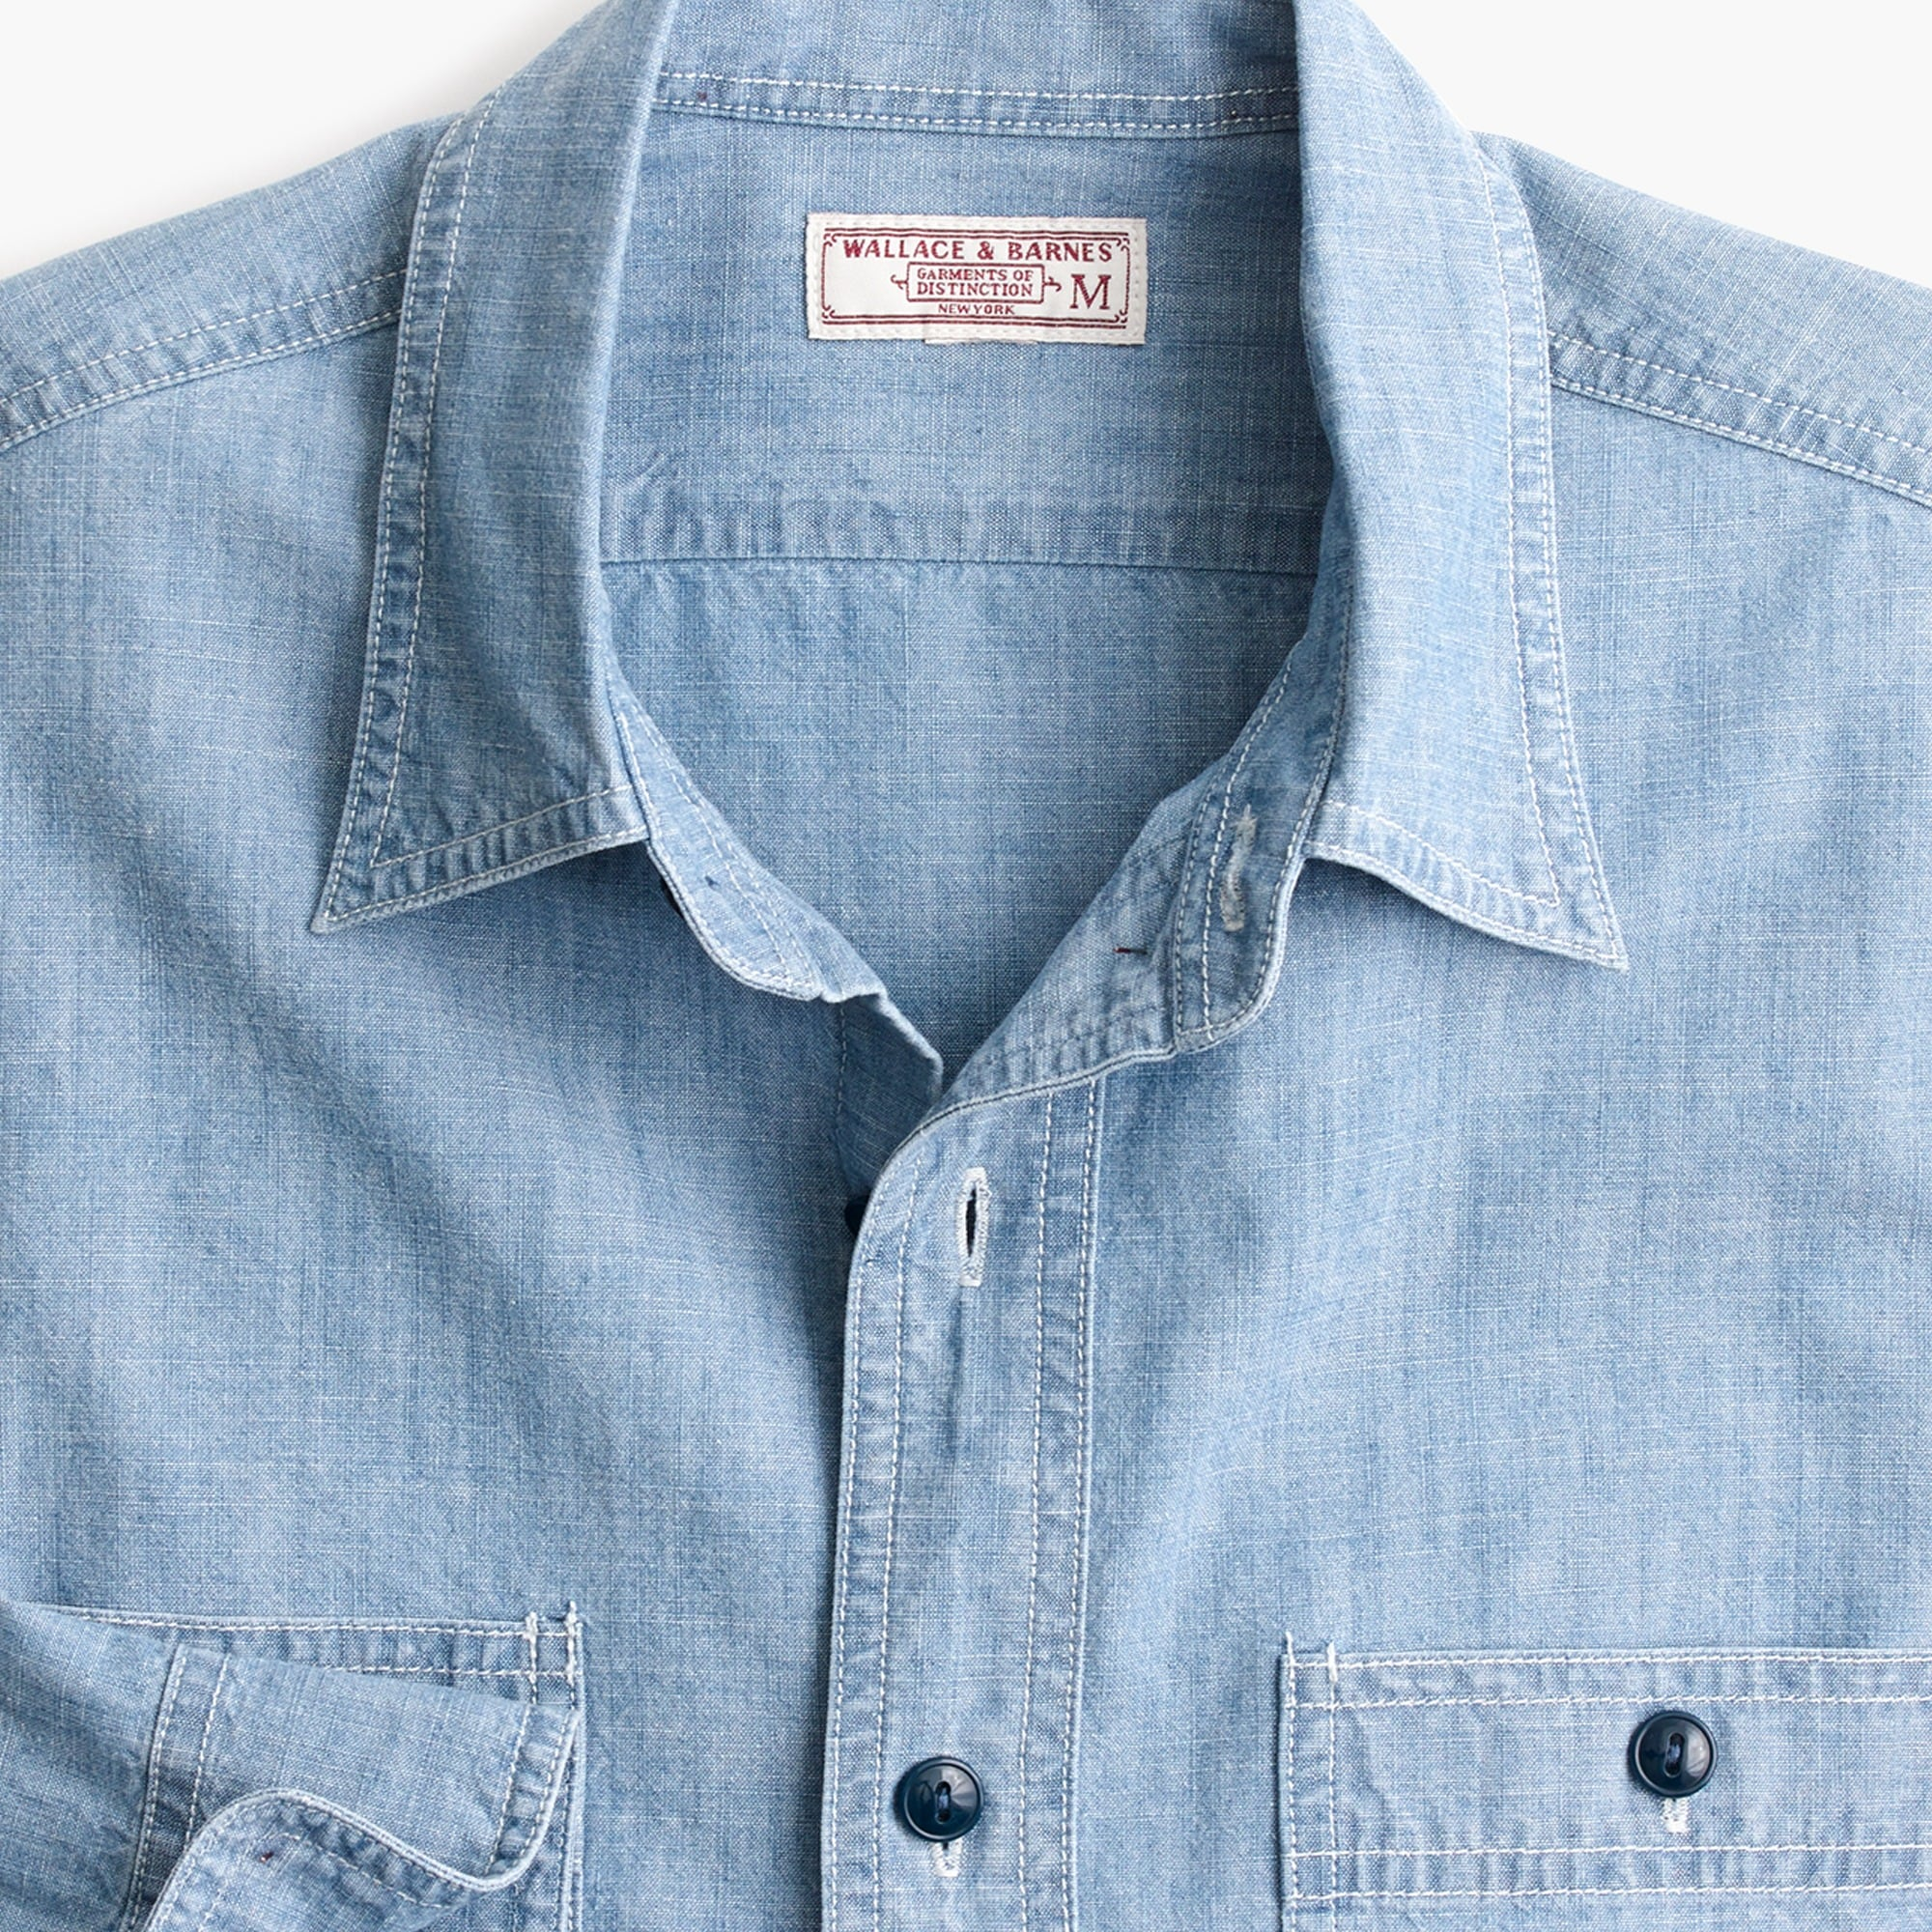 Wallace & Barnes chambray workshirt